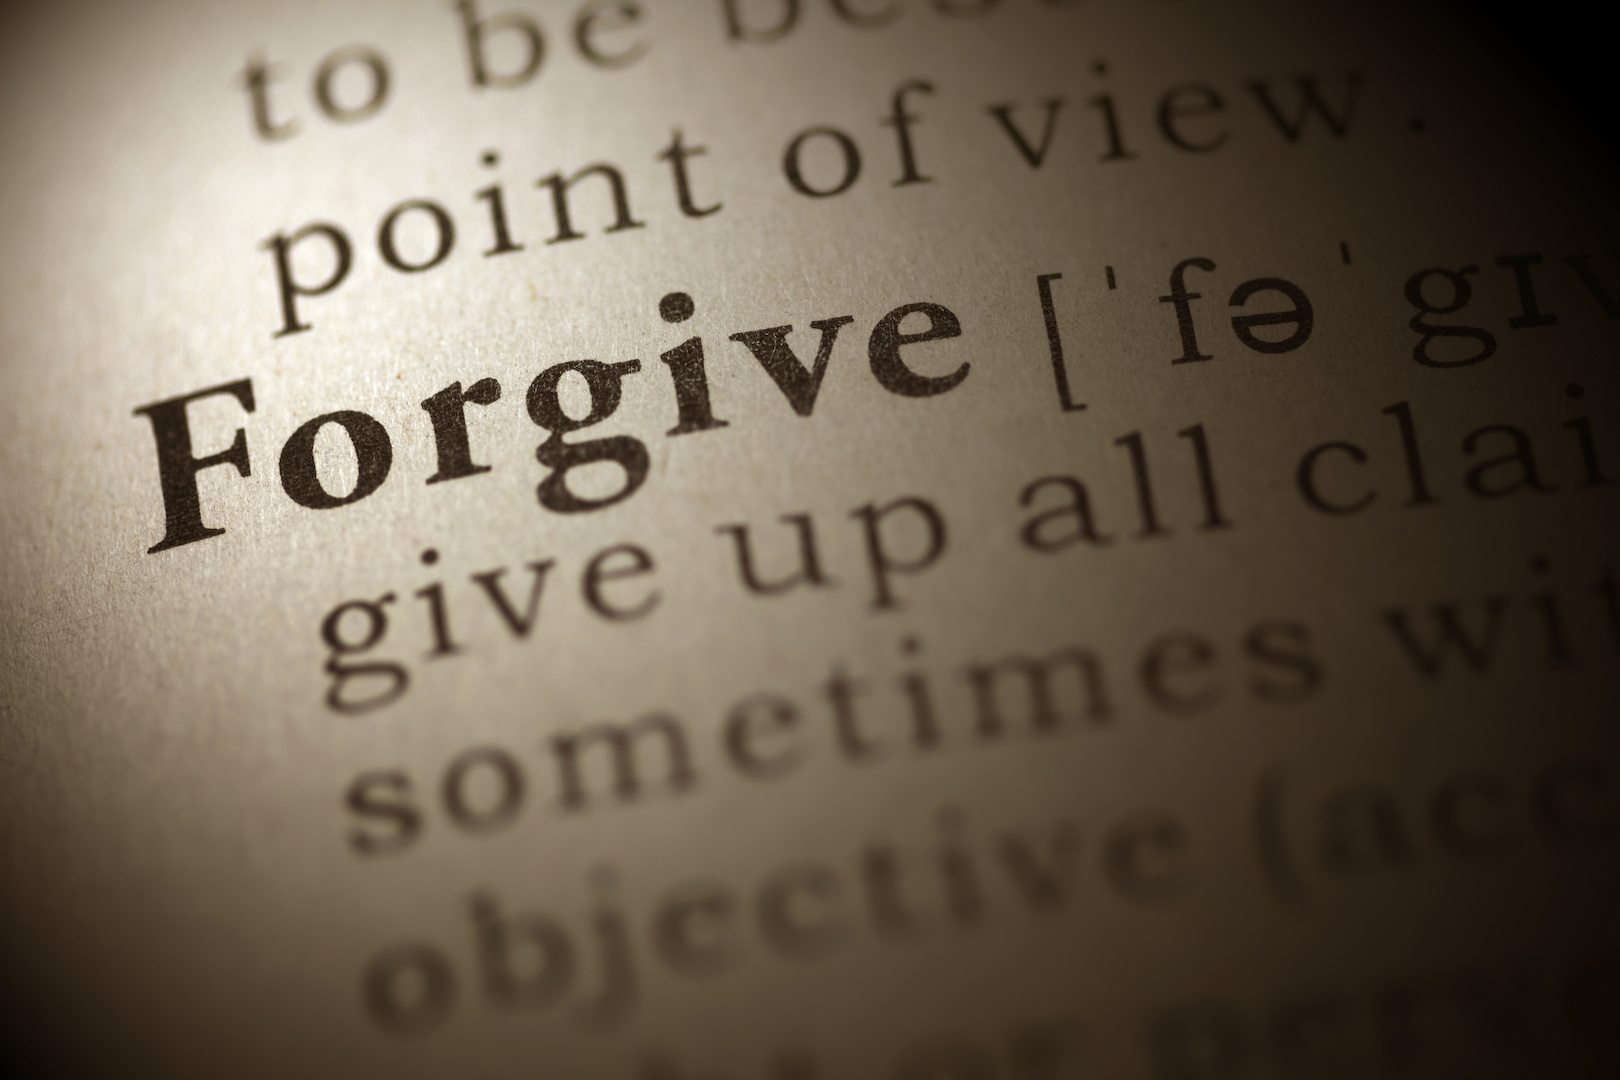 https://marriagemissions.com/wp-content/uploads/2007/08/Time-to-Forgive-AdobeStock_59582002-copy.jpg